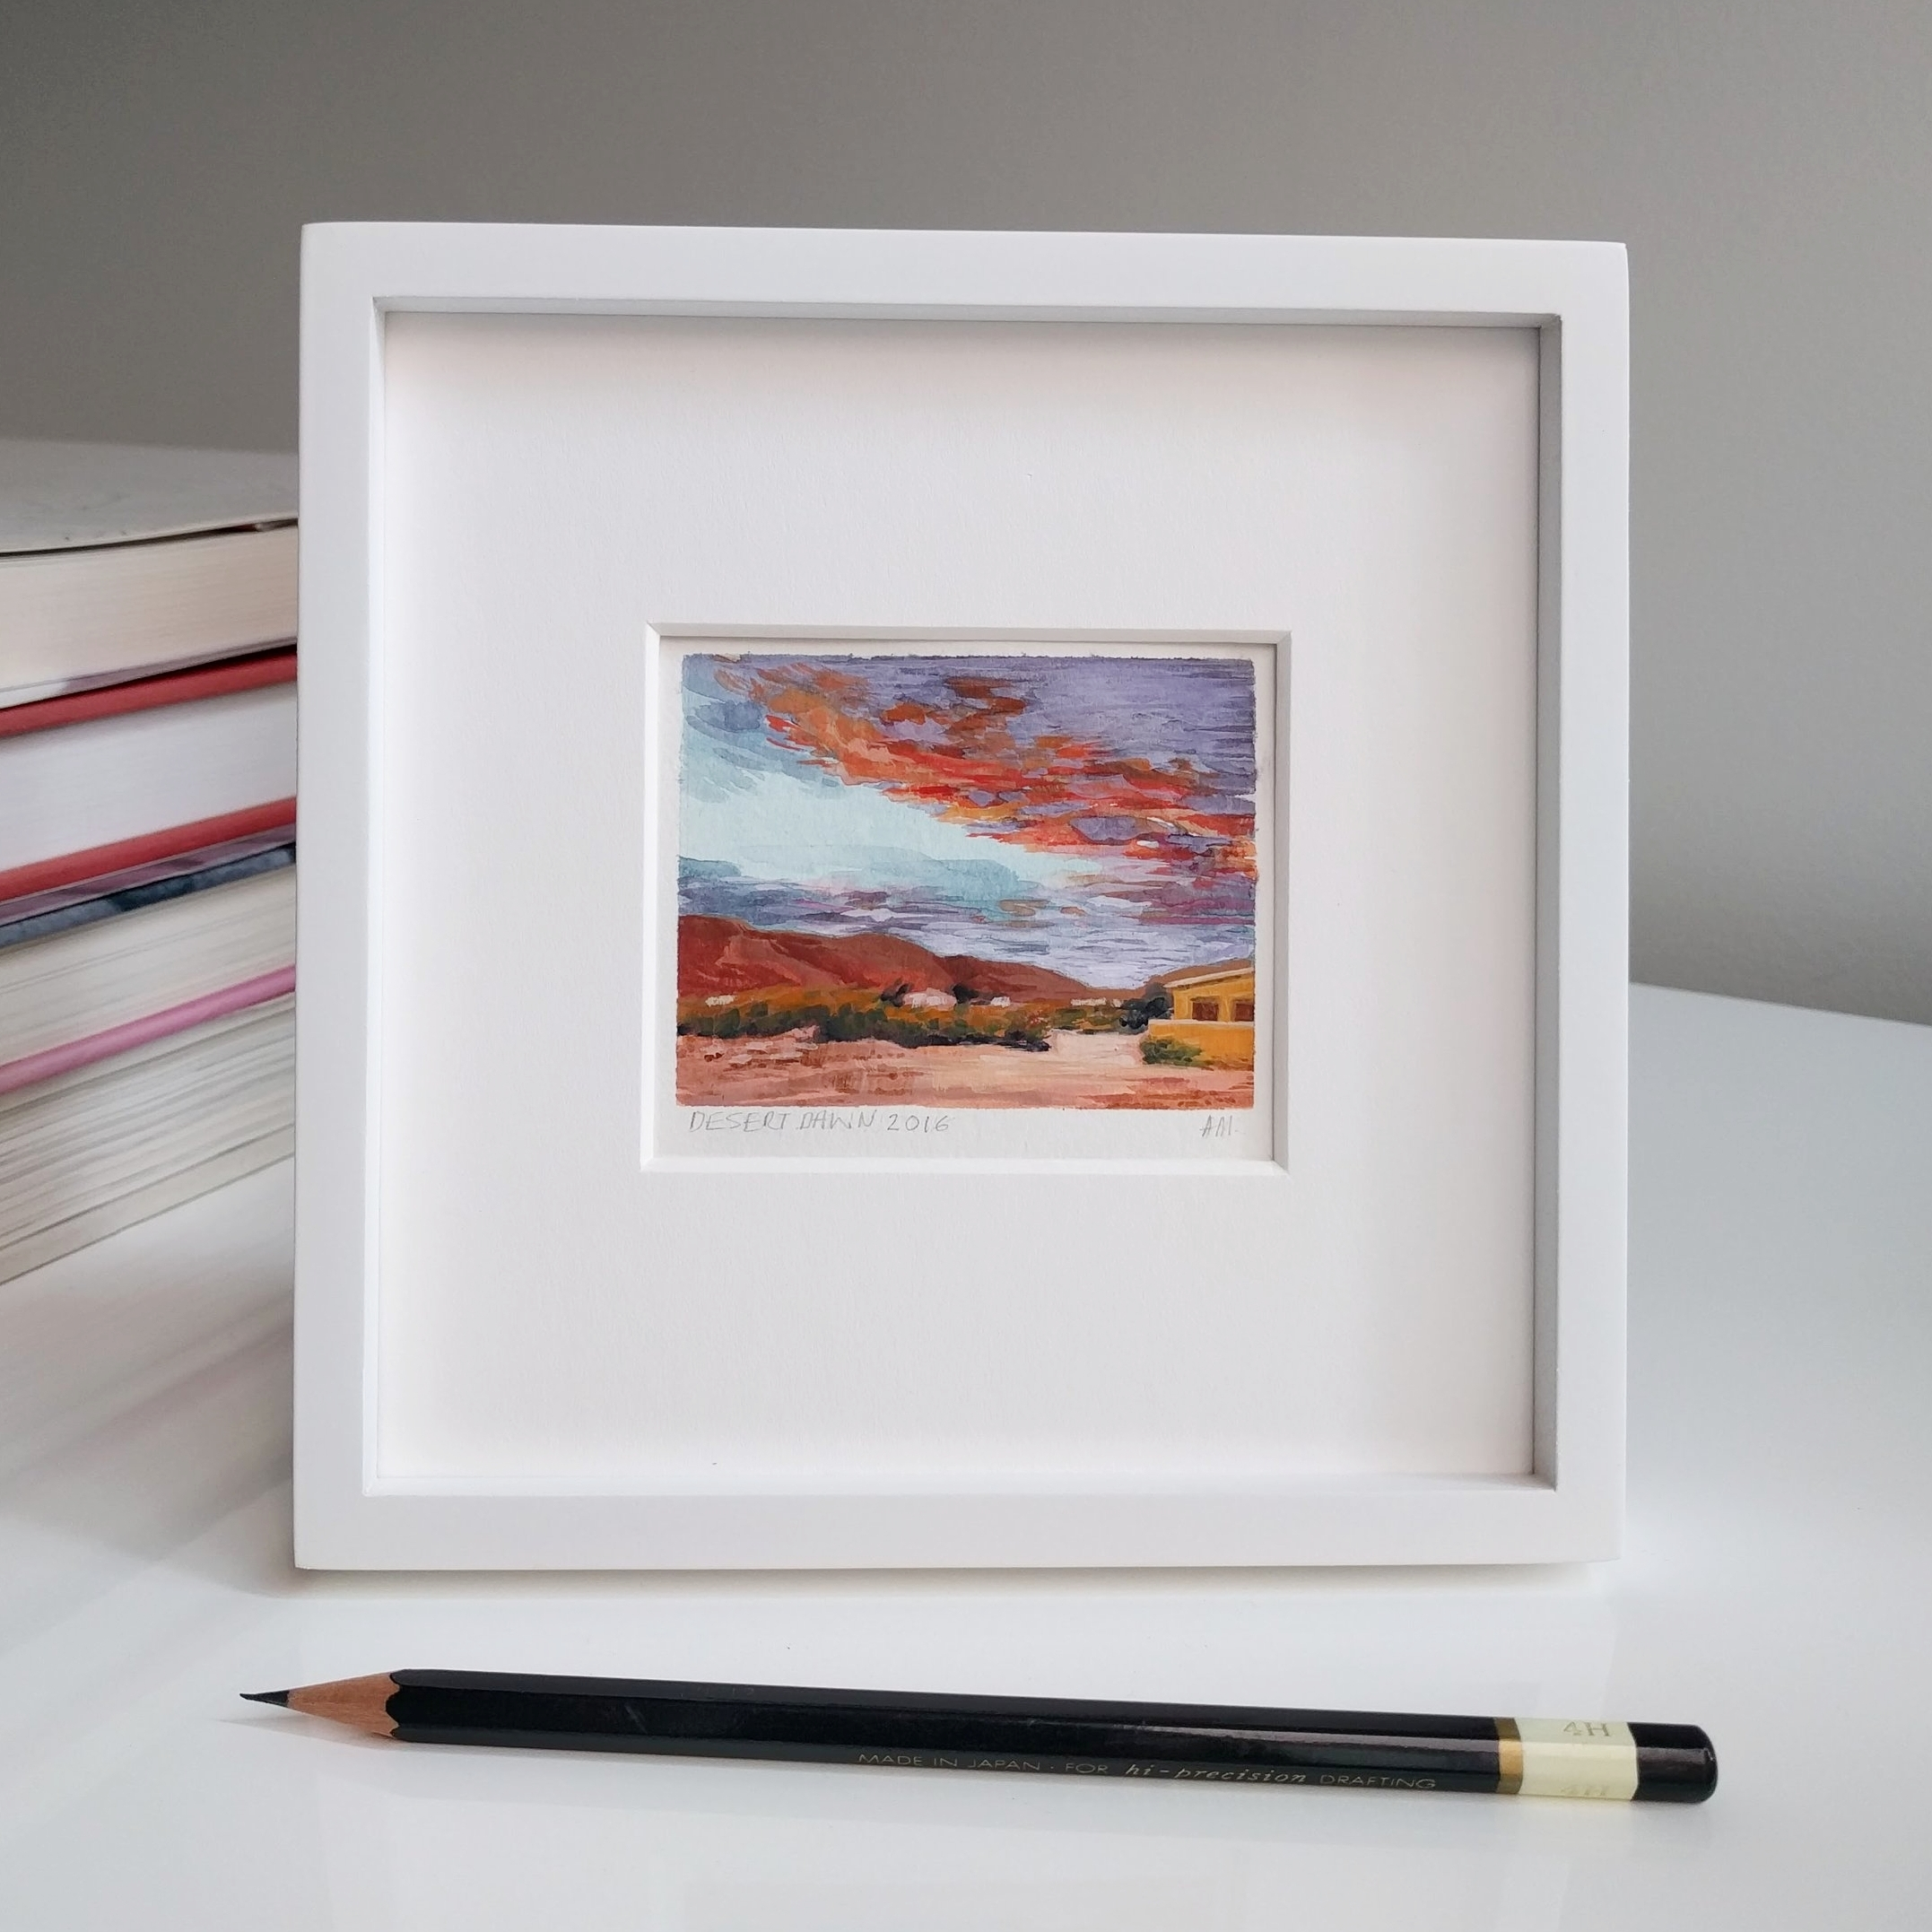 My Small Paintings miniature watercolour framed tiny art of pink sunset in the California Desert 29 Palms Inn